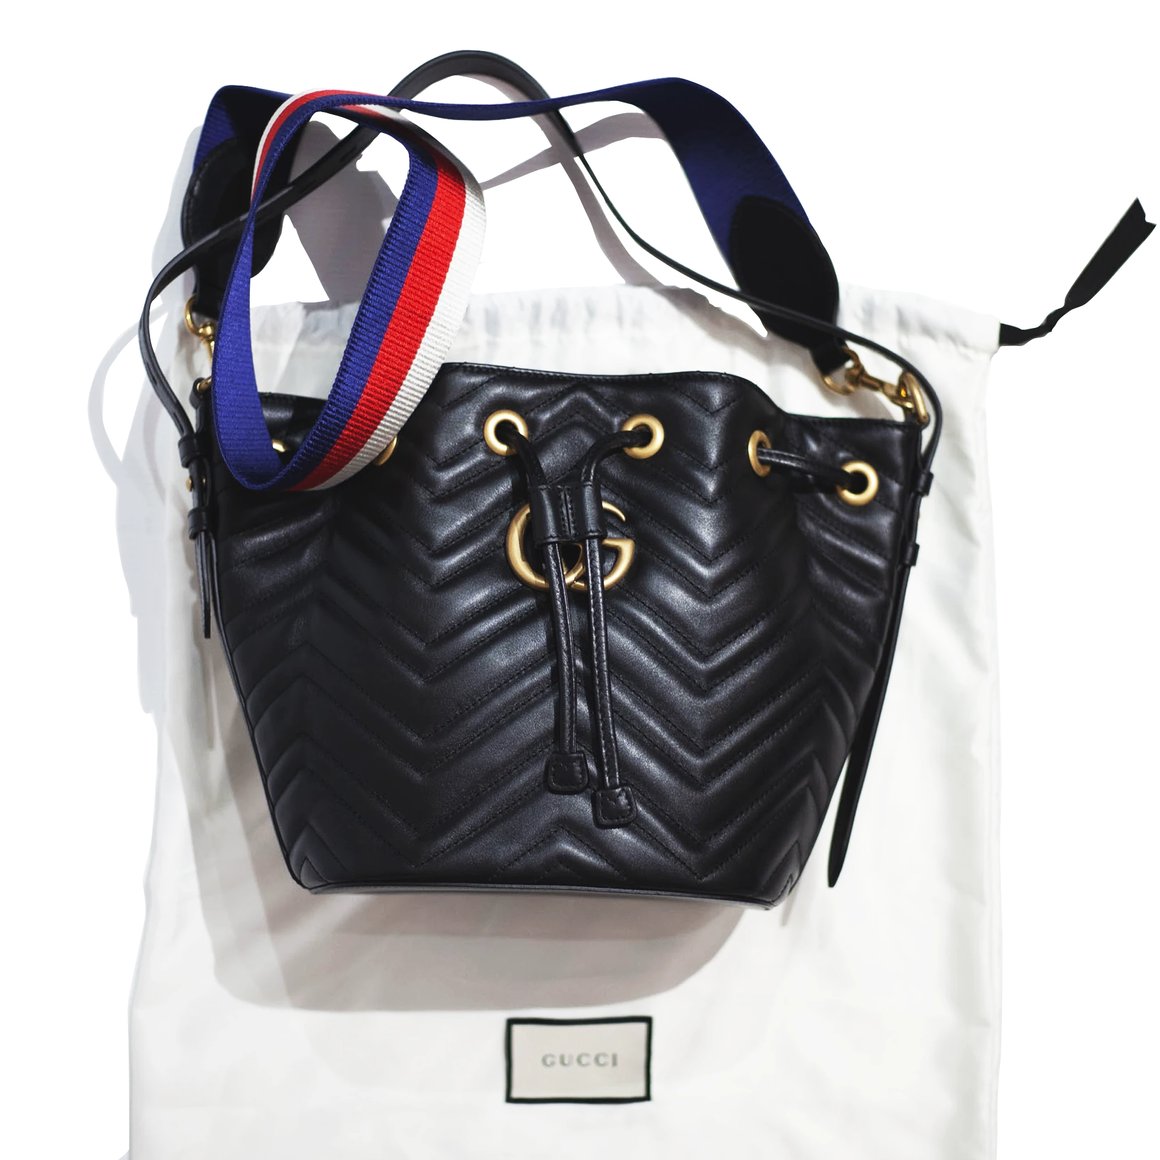 GUCCI GG Marmont Quilted Bucket Bag - Black